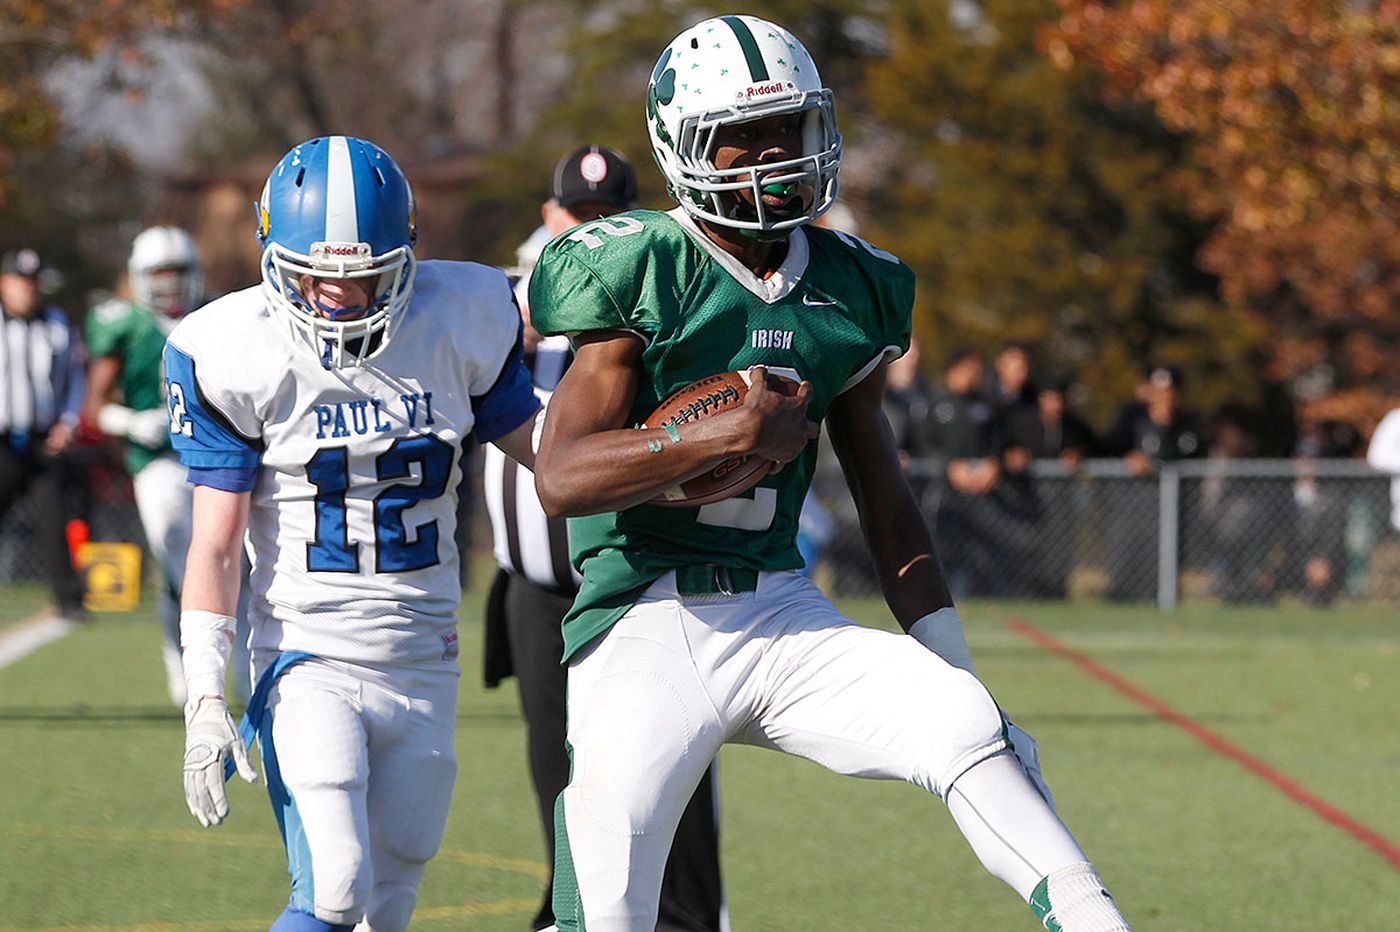 Narducci: Camden Catholic's Rodgers makes final game at QB count